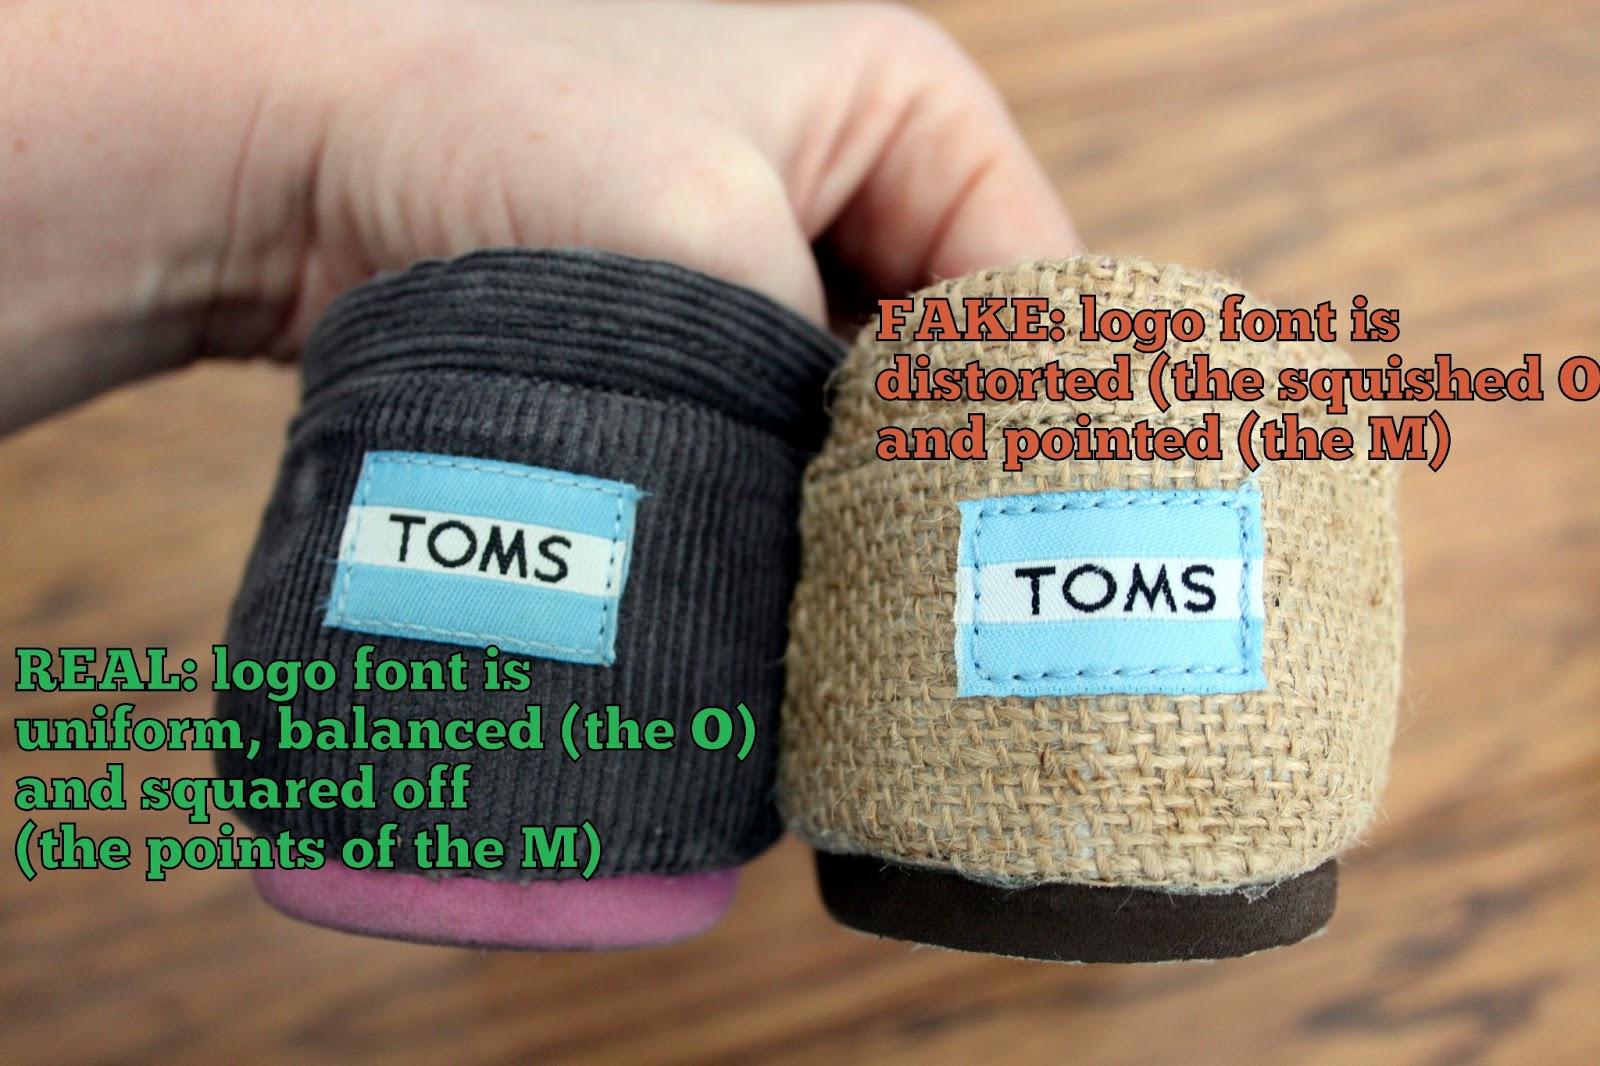 e69ef0ee45f Put Up Your Dukes  Real TOMS vs Fake TØMS  Spotting the Differences